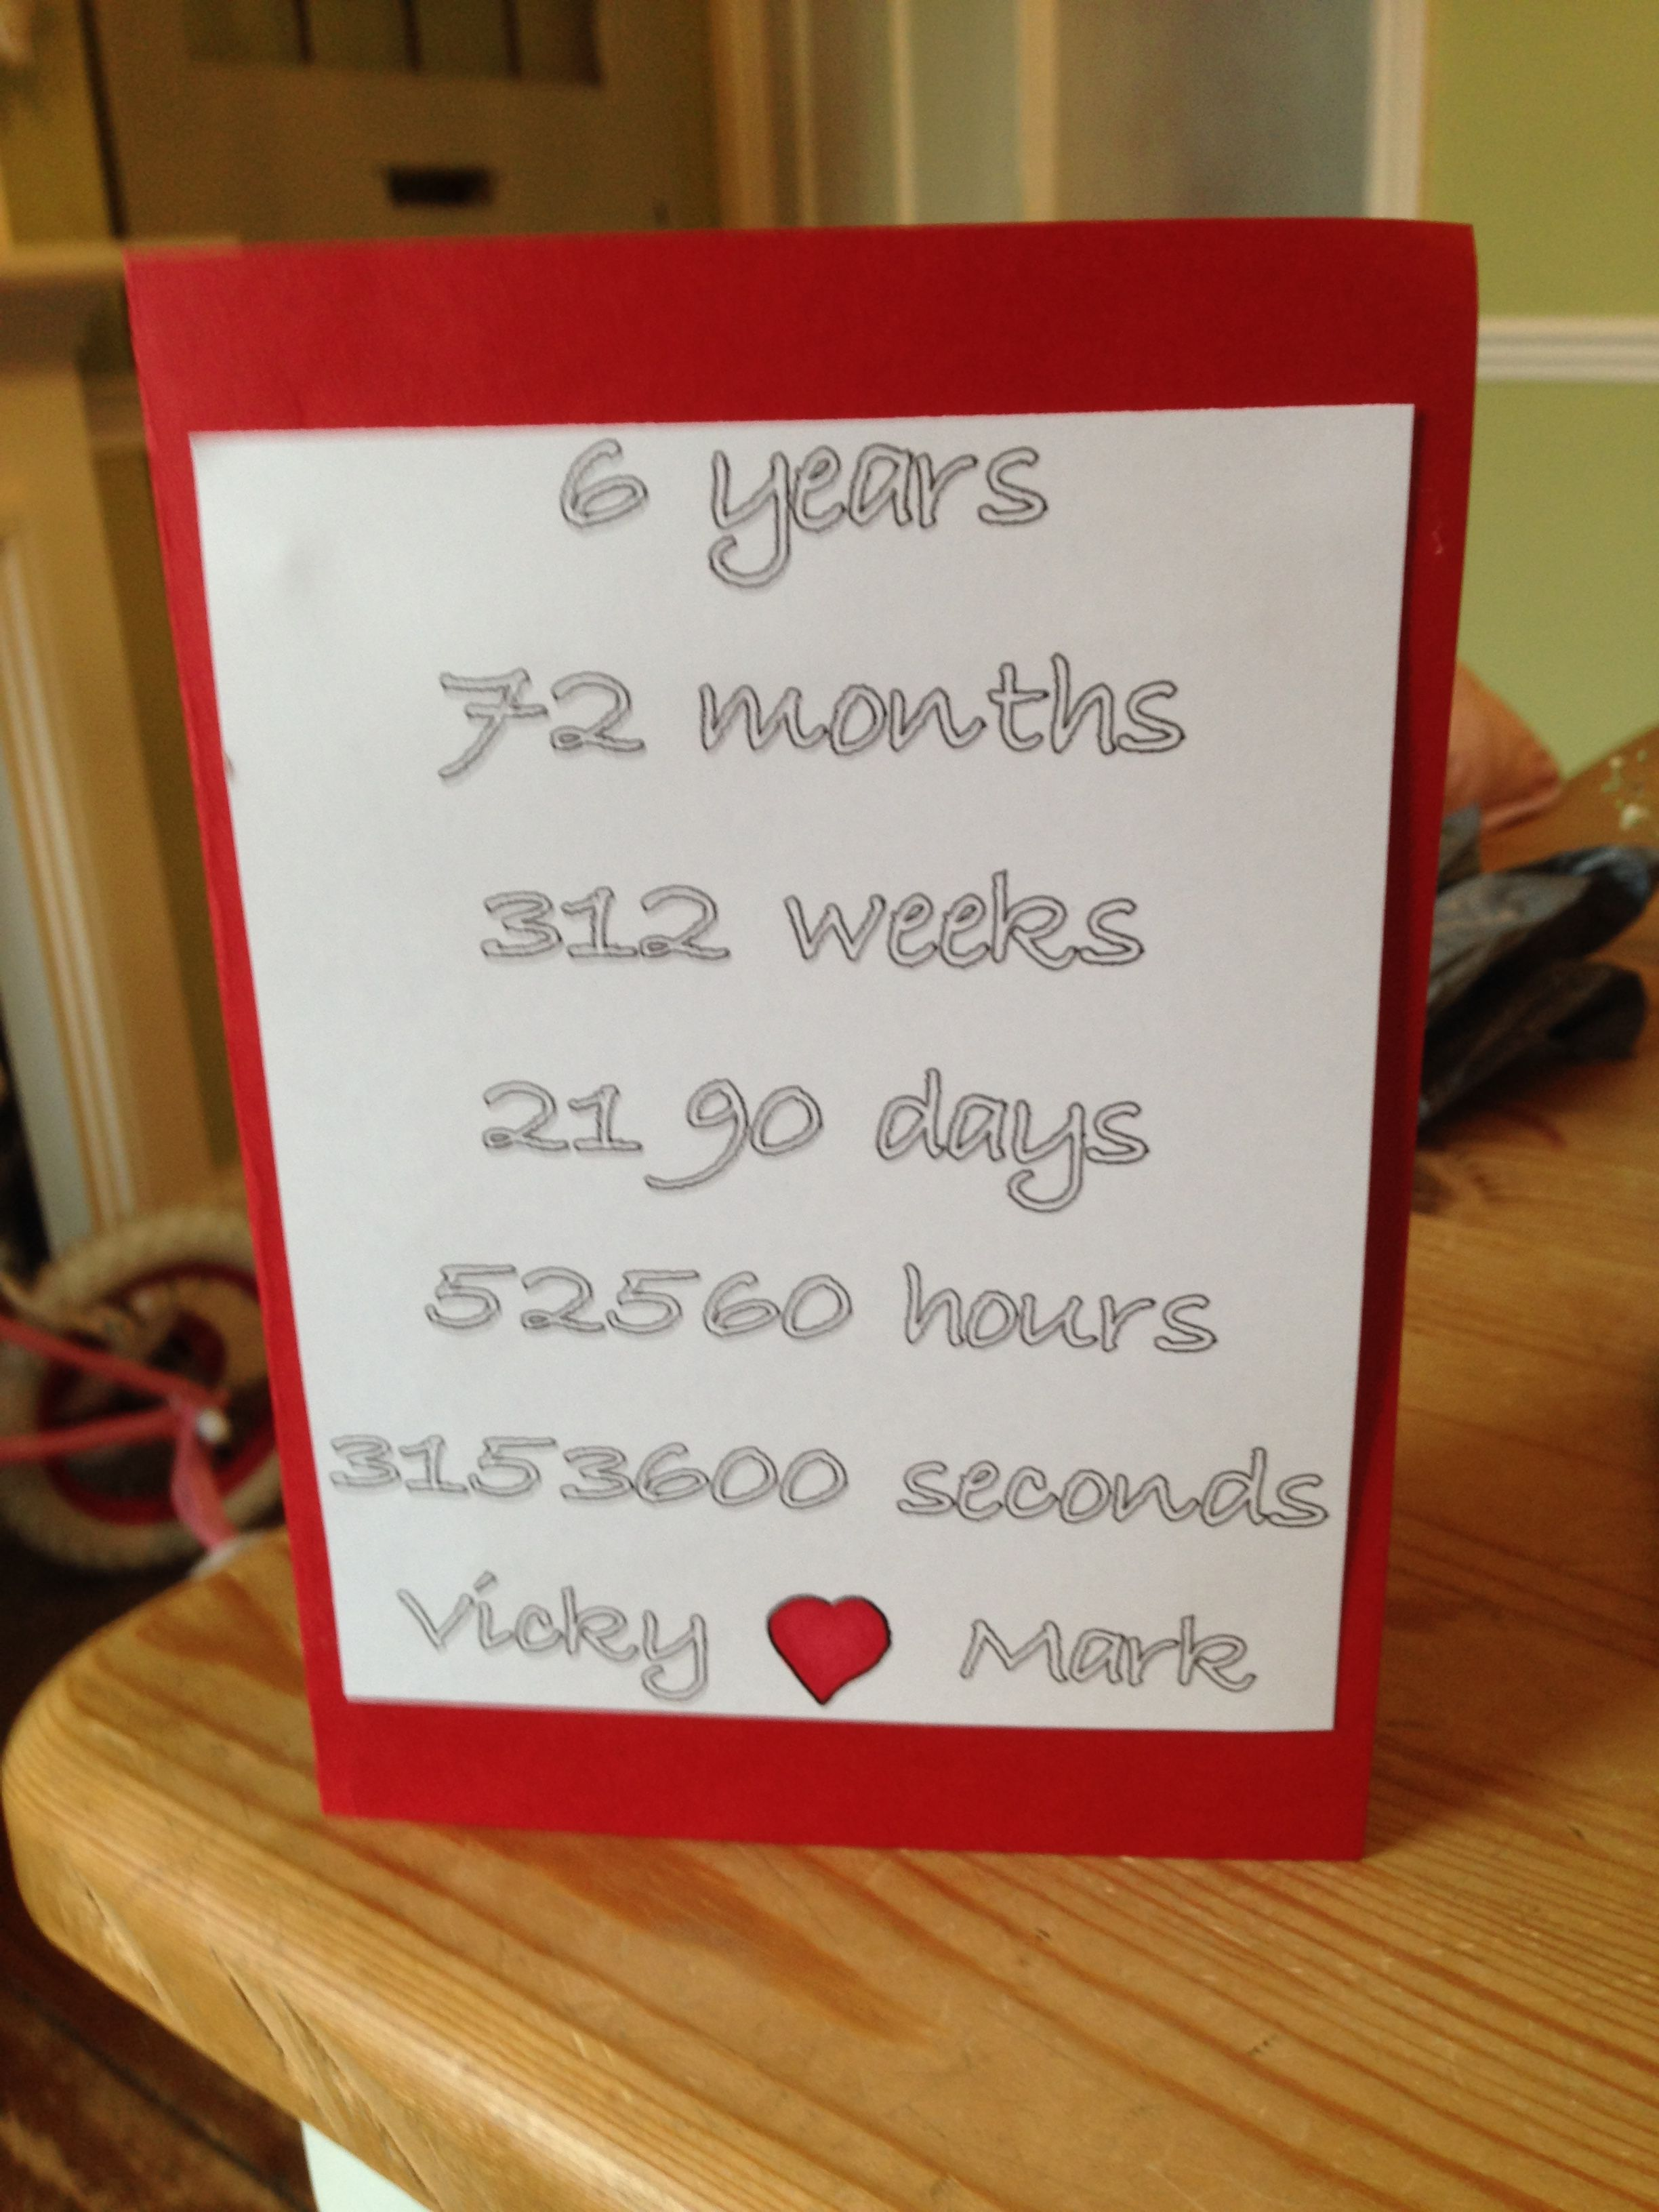 6 year anniversary card love it pinterest for 1st year anniversary gift ideas for wife